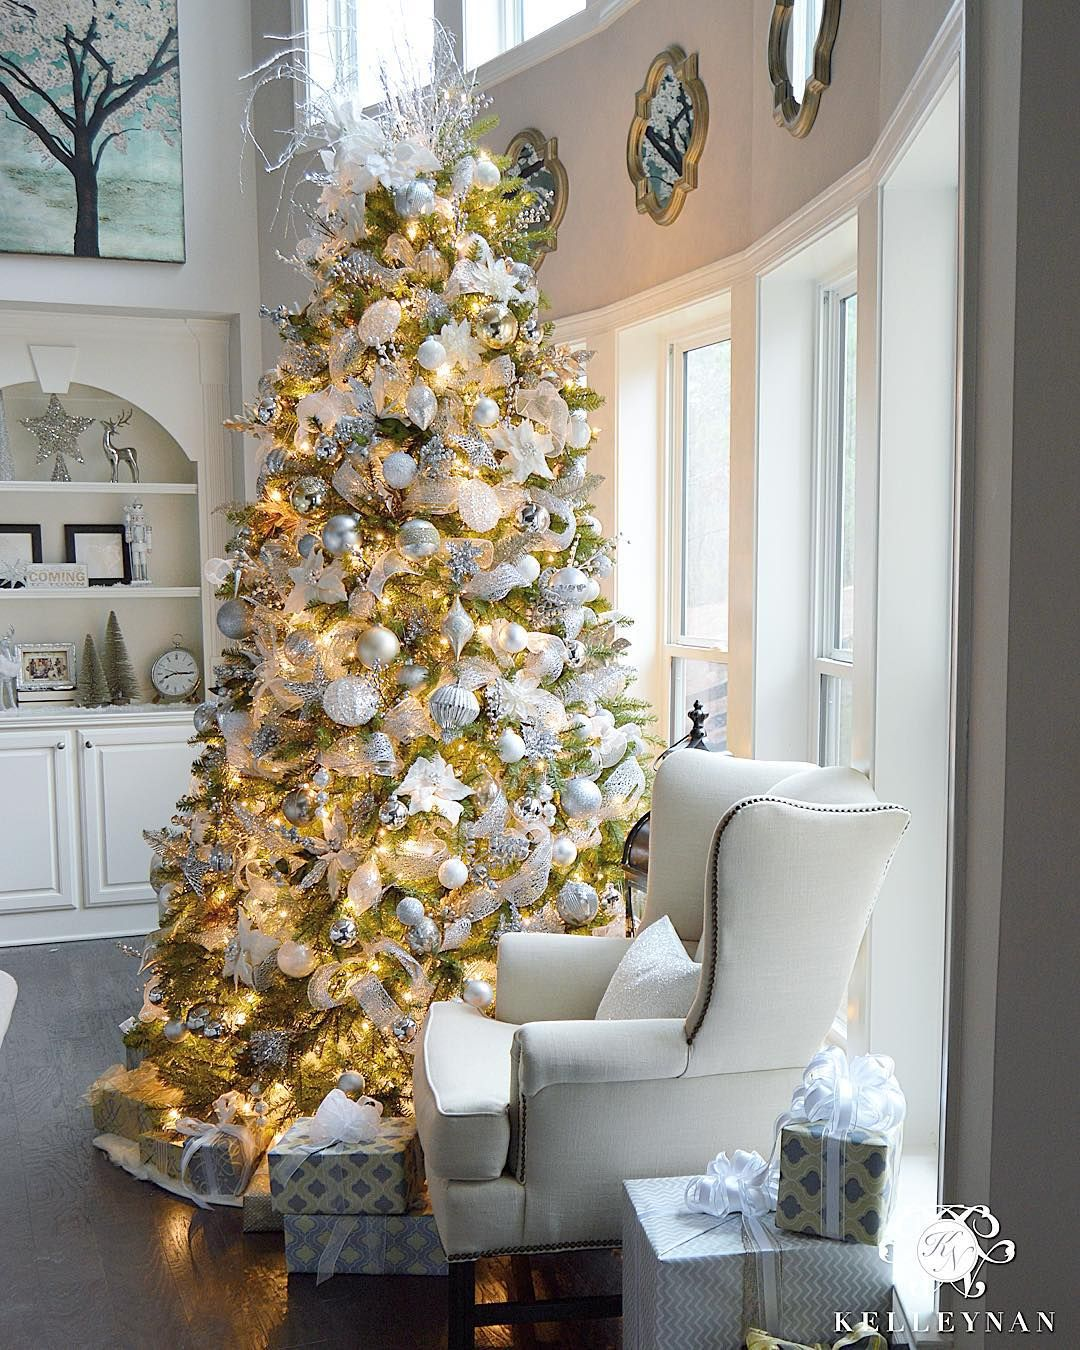 9 foot white gold and silver christmas tree filled with ornaments in two story great room in front of bow of windows check out all the silver and gold - Silver And Gold Christmas Tree Decorations